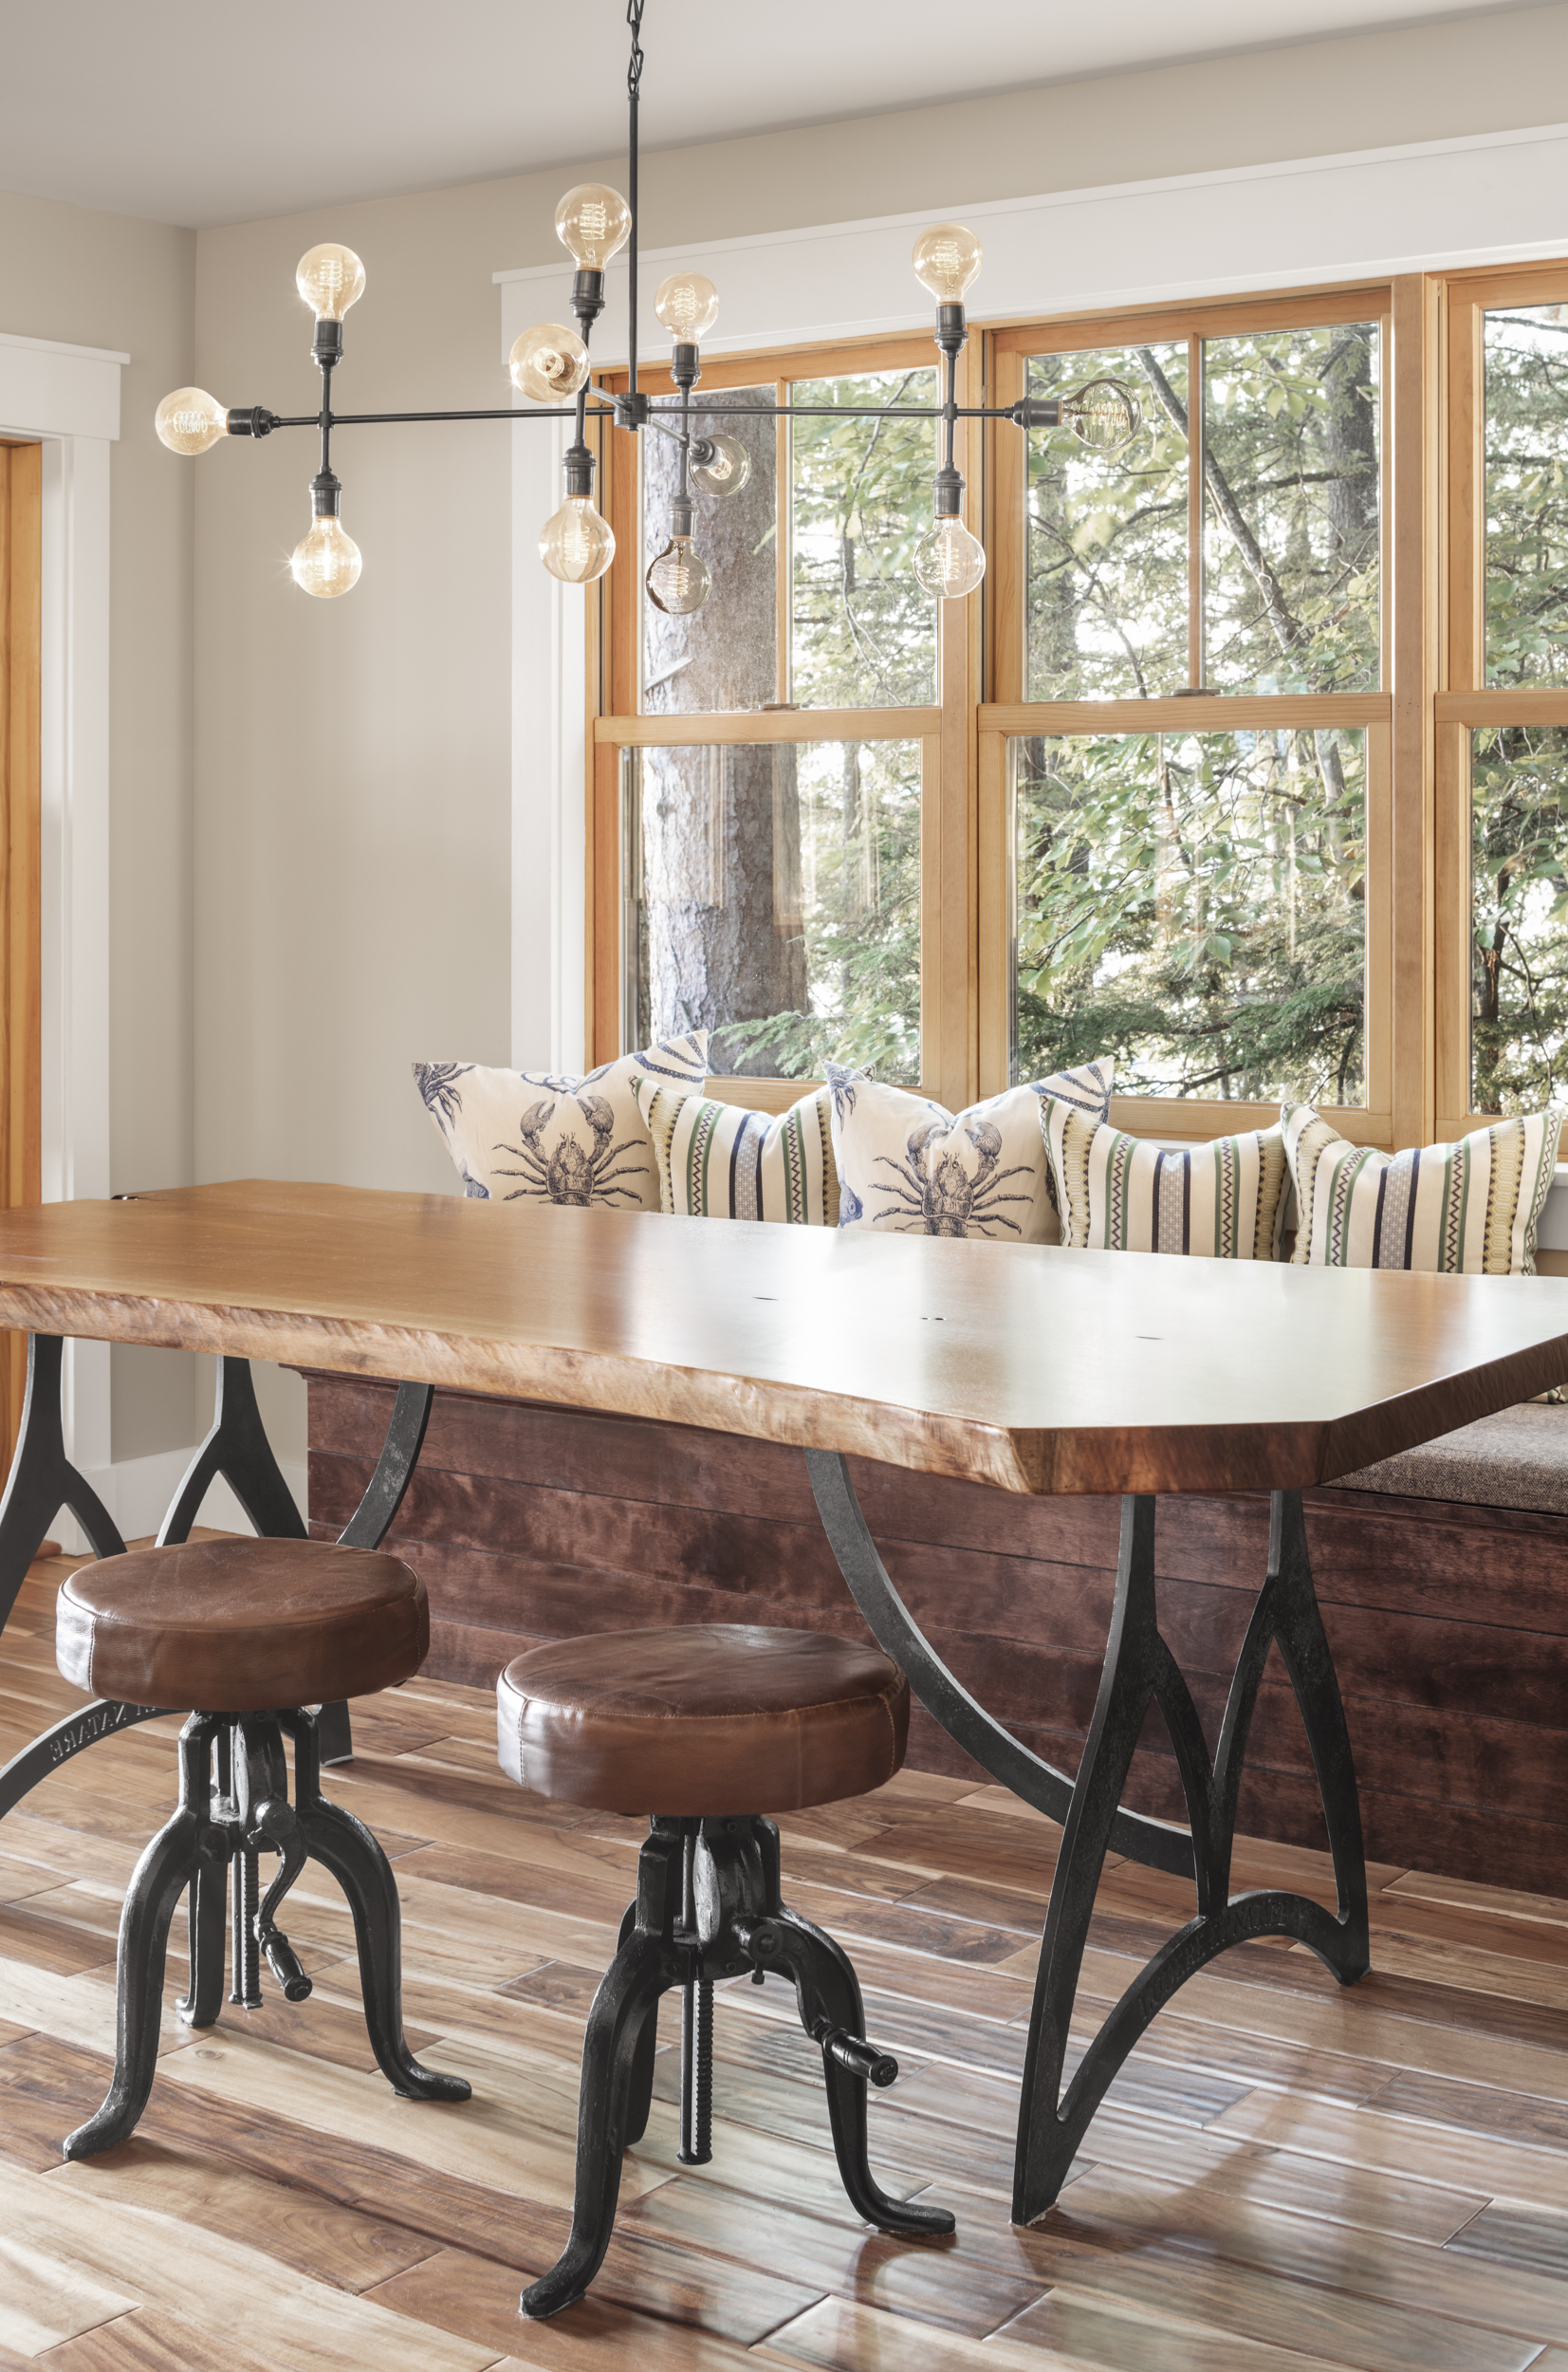 This live edge black walnut dining table was designed by Vanessa Helmick and built in Gorham by Tim Hill fine woodworking. The base has a latin inscription cut into the steel. A solid slab of wood is MEANT TO BE USED-scratched, weather. Perfect for a growing family and a summer house full of guests! The banquette seating is designed for storage-it holds cots that can be taken out to sleep cousins and friends! Cushions and pillows are indoor outdoor fabric, perfect for lake living in Maine.